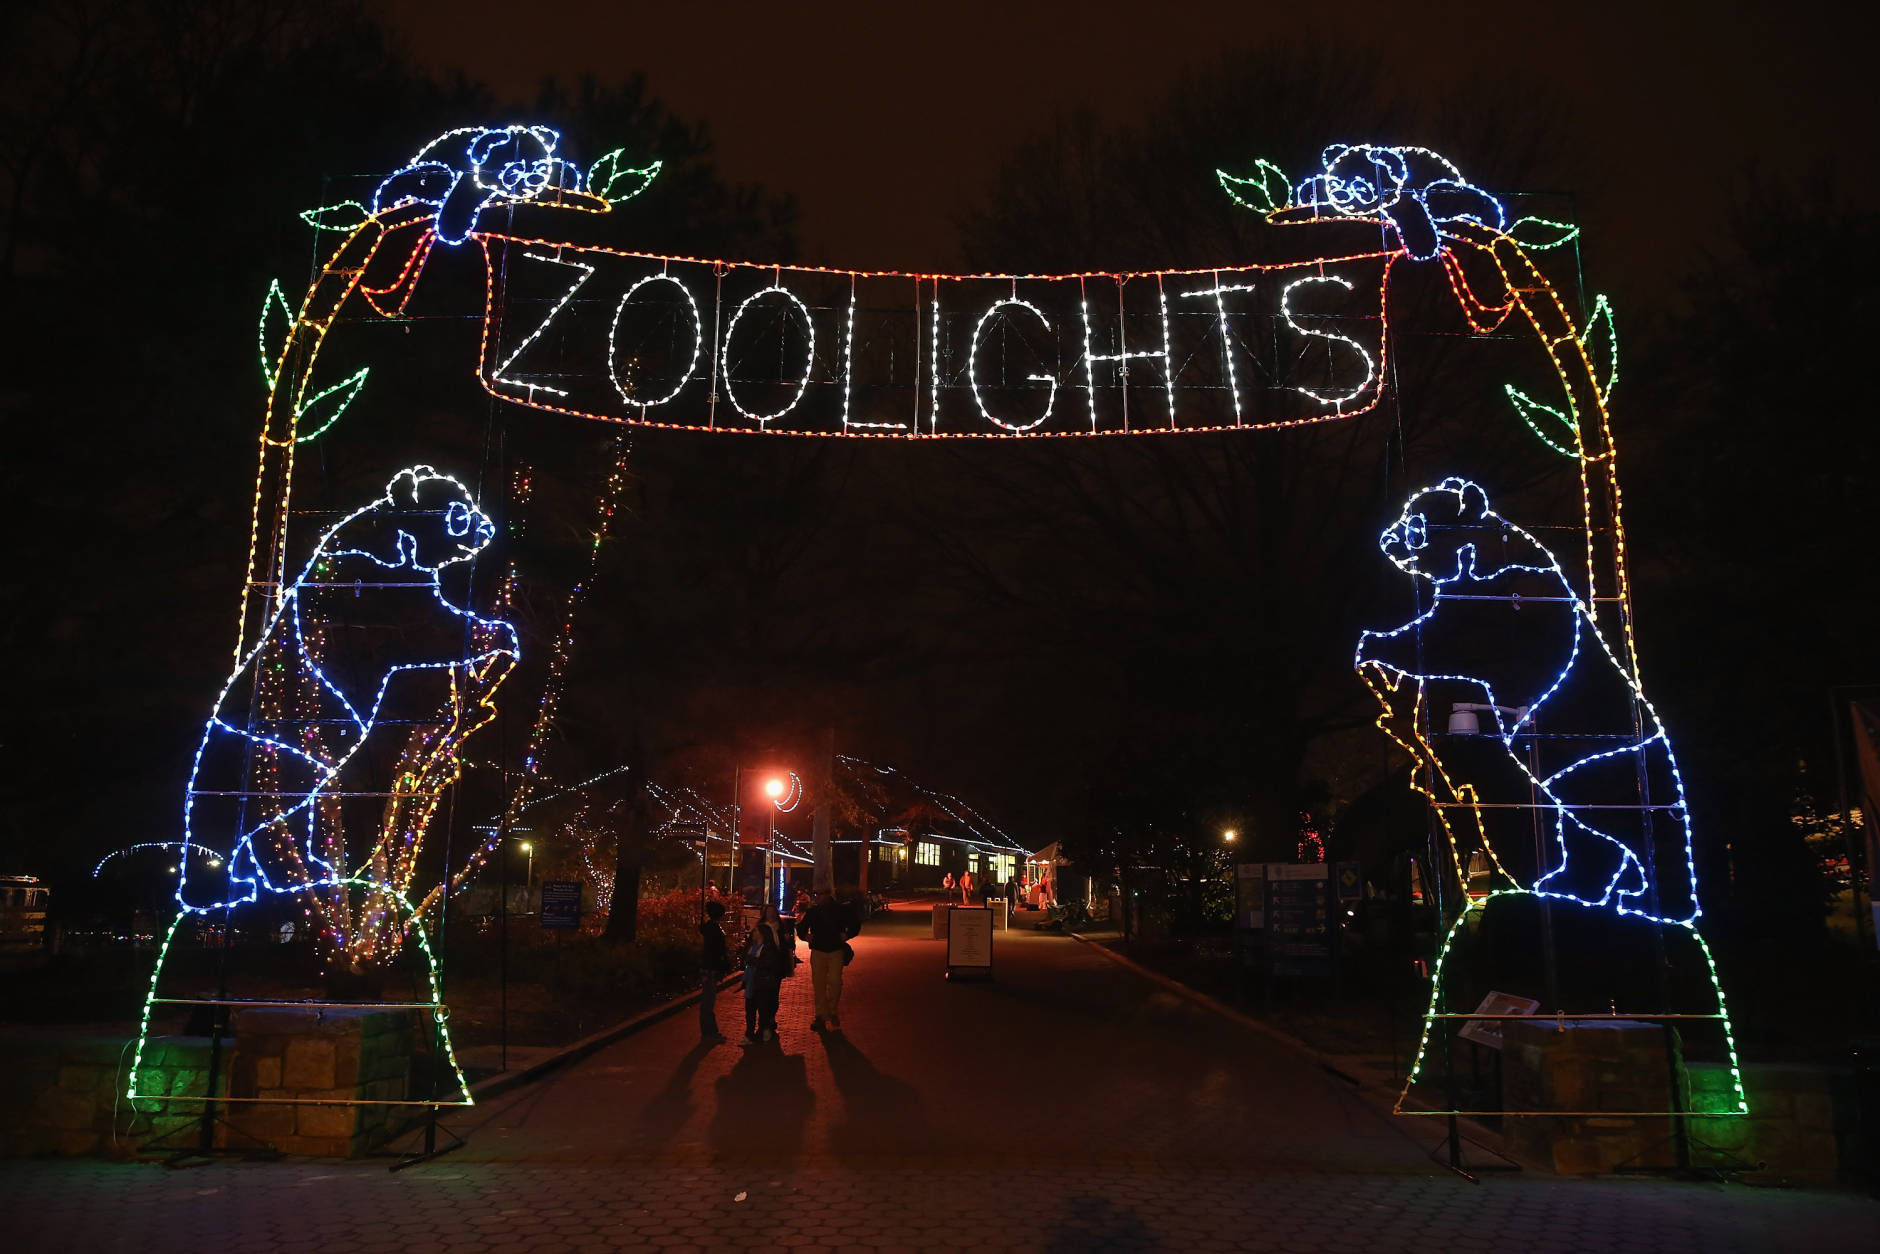 WASHINGTON, DC - DECEMBER 02:  The Smithsonian National Zoological Park's entrance is decorated with holiday lights during the ZooLights celebration December 2, 2013 in Washington, DC.  (Photo by Chip Somodevilla/Getty Images)